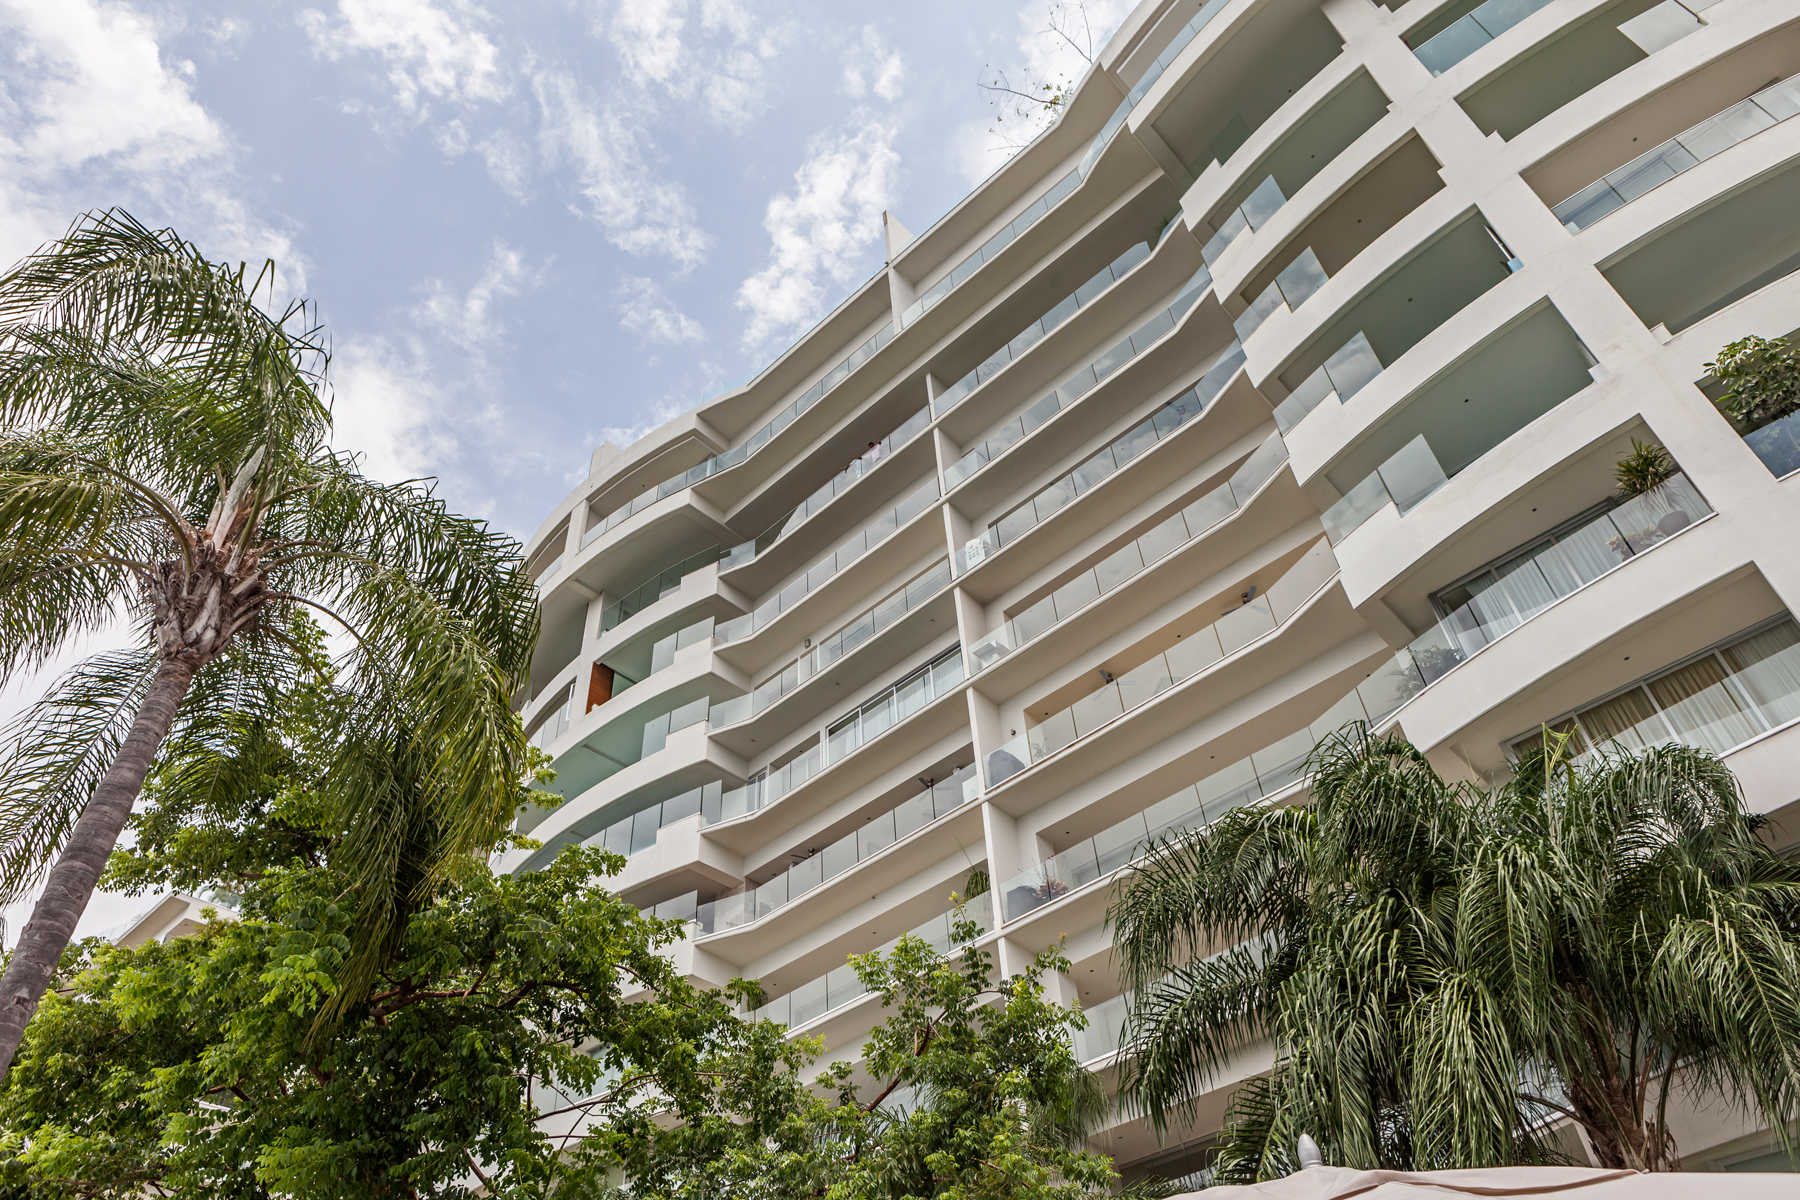 Apartment for Sale at Avalon 202, Luxury Apartment in Puerto Vallarta Torre Avalon, Depto 202 Calle Gardenias 248 Puerto Vallarta, Jalisco 48399 Mexico